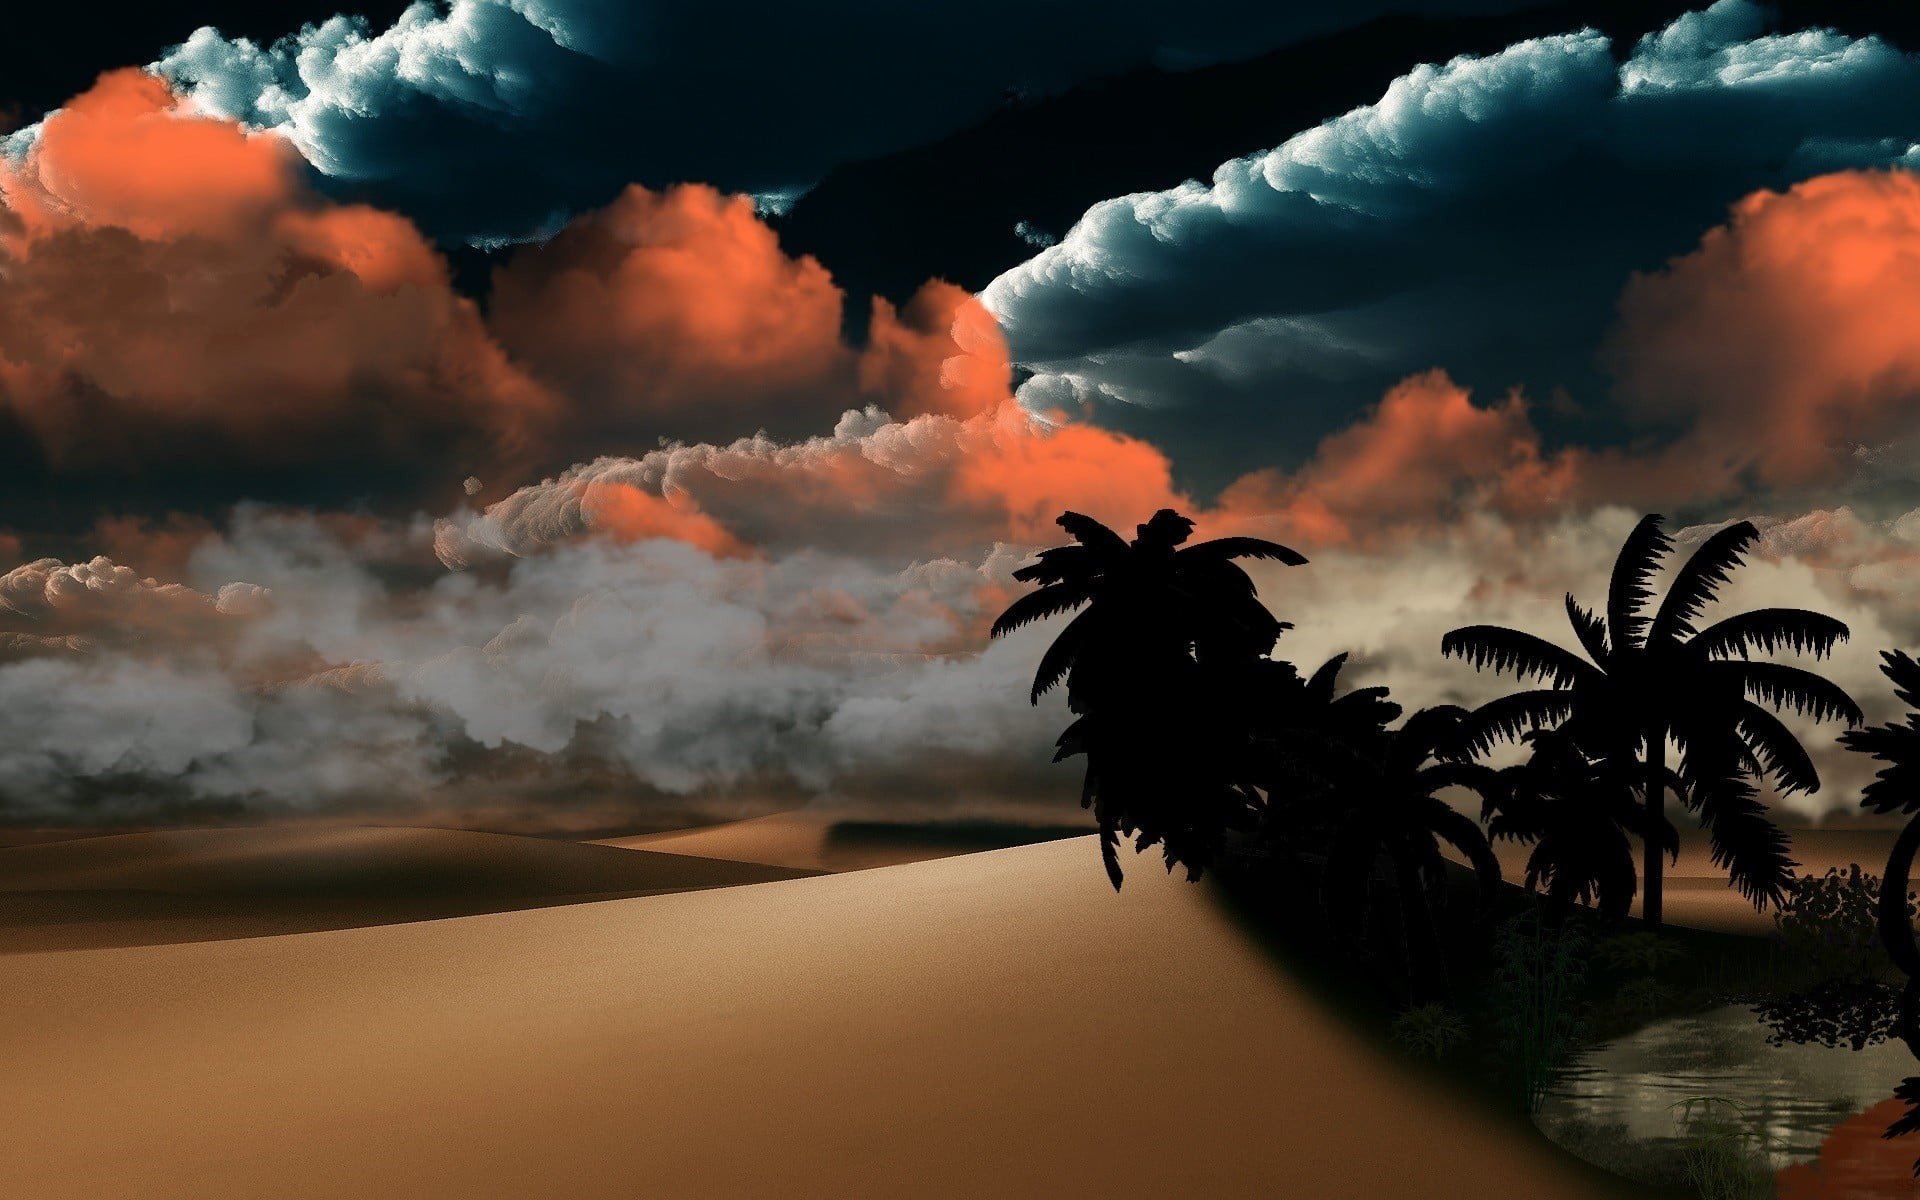 Res: 1920x1200, sand dunes and oasis wallpaper, sky, clouds, desert, palm trees HD wallpaper